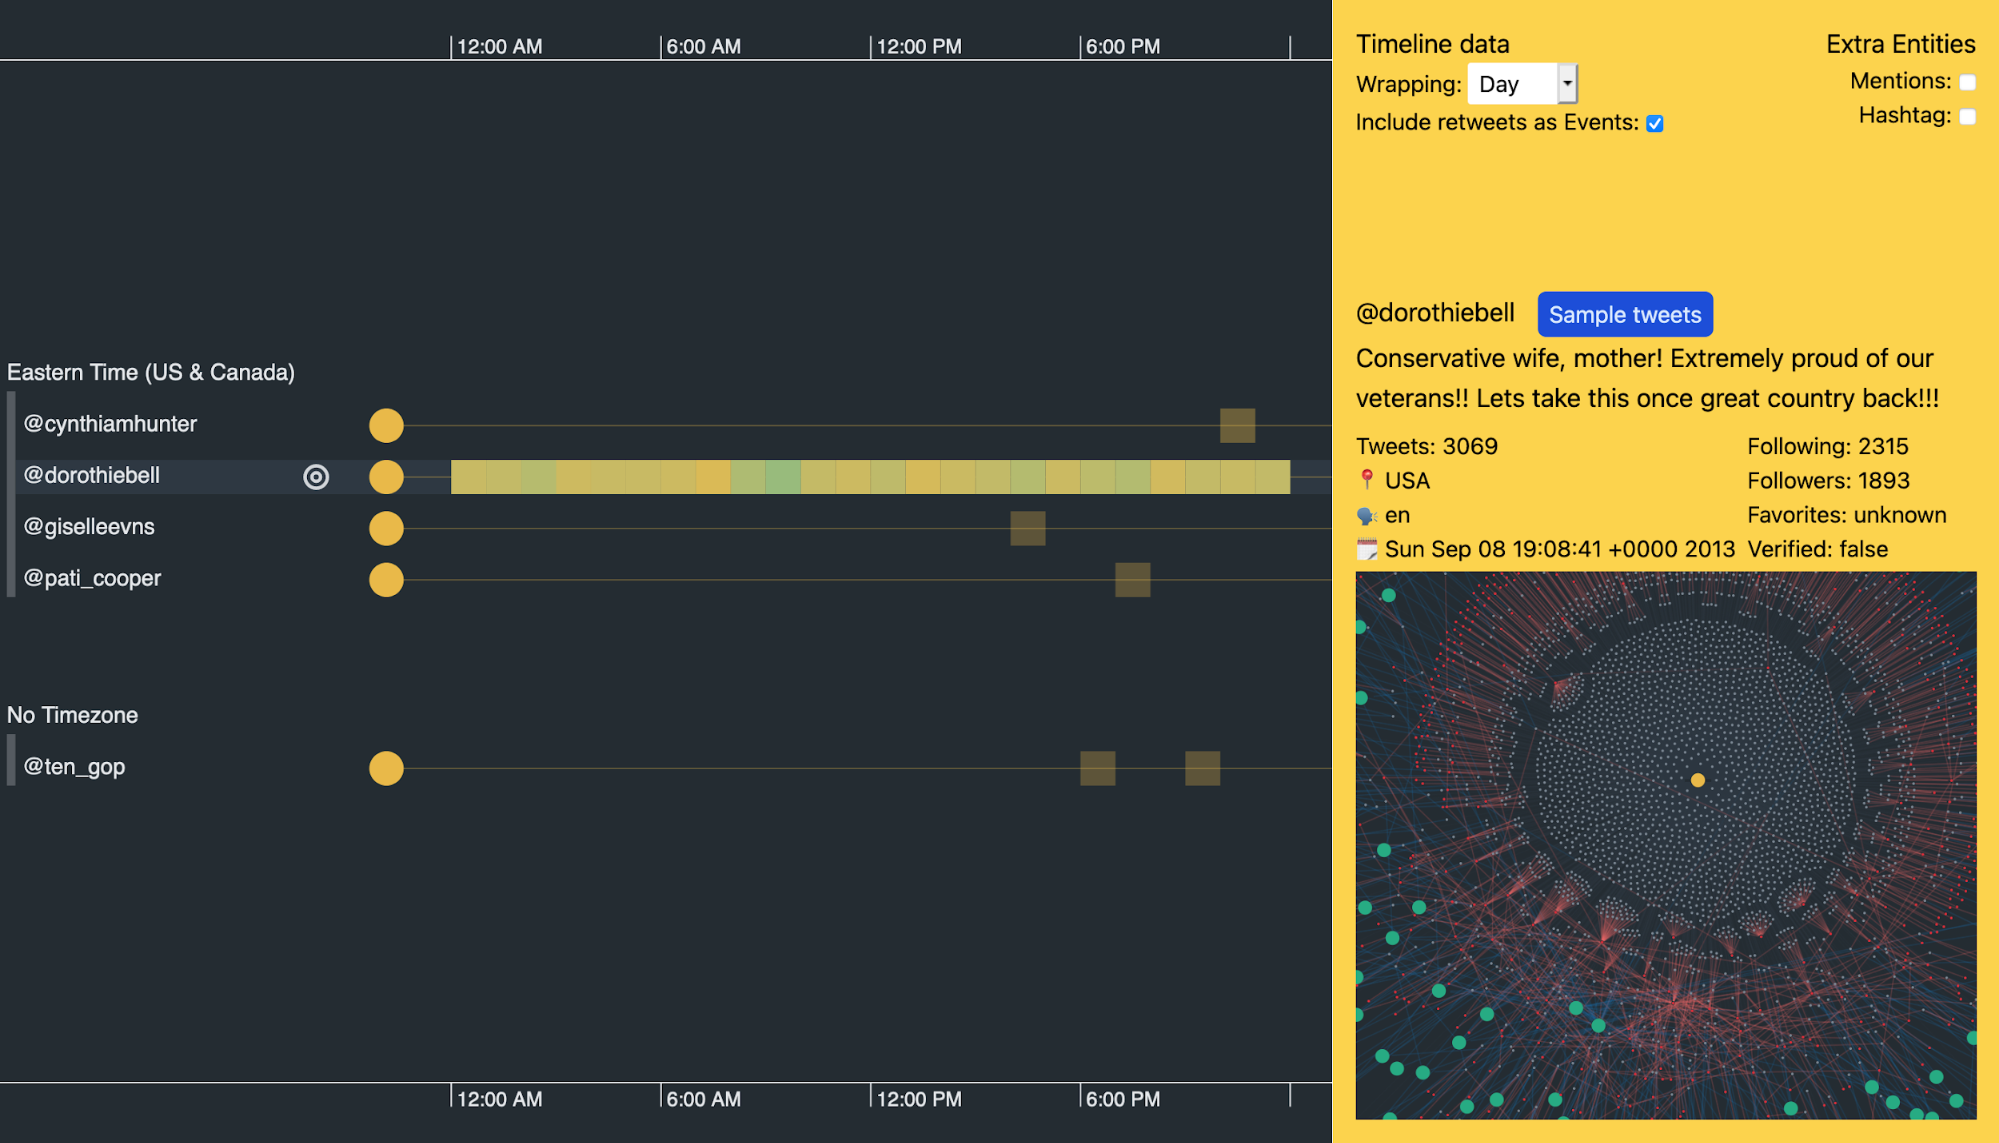 Our Twitter data visualization shows that @dorothiebell tweets every hour of the day